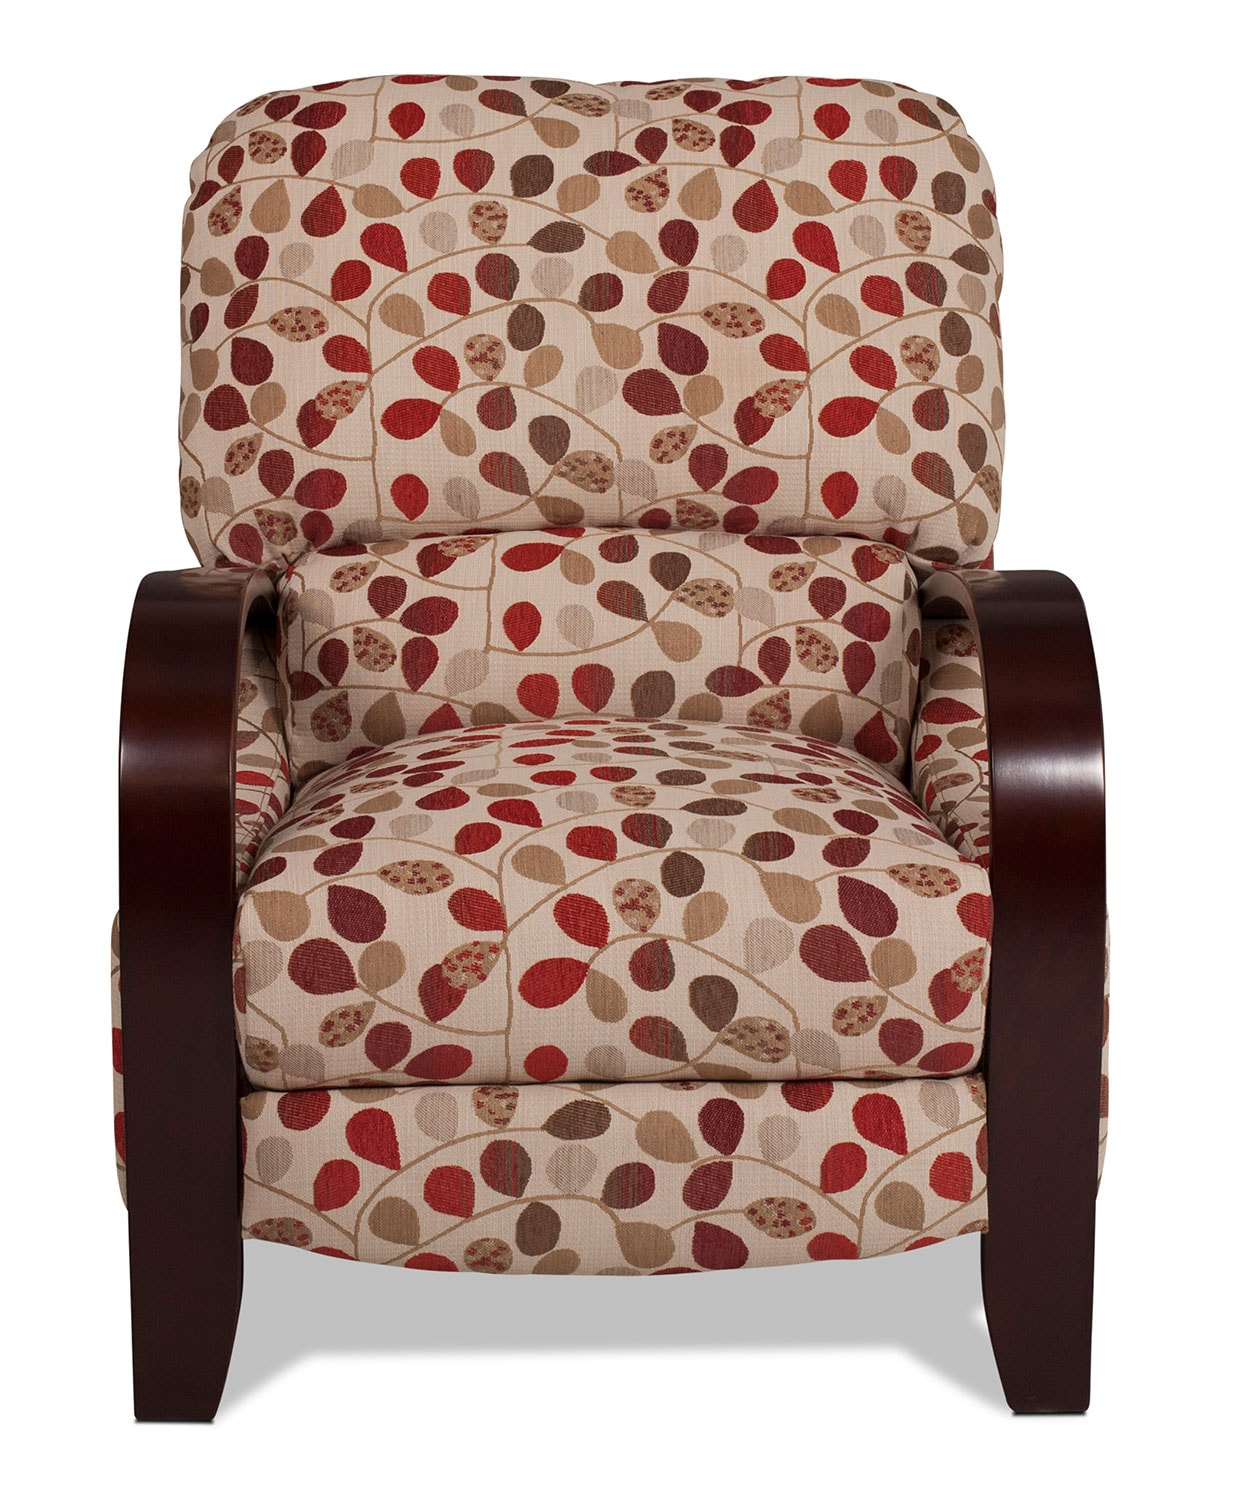 Living Room Furniture - Camas High-Leg Recliner - Floral